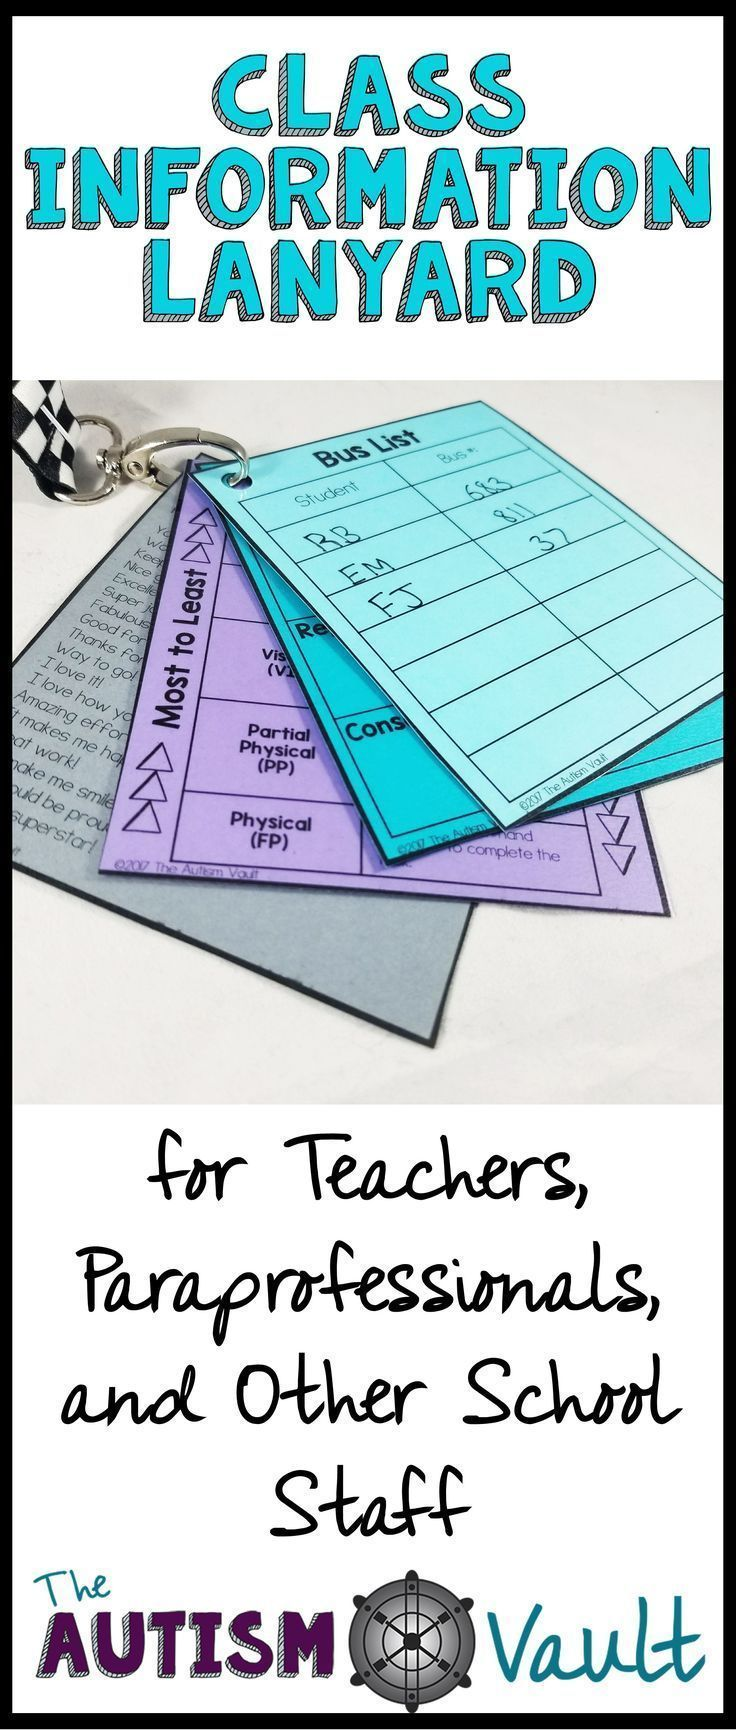 527 best Data Collection images on Pinterest | Classroom ideas ...